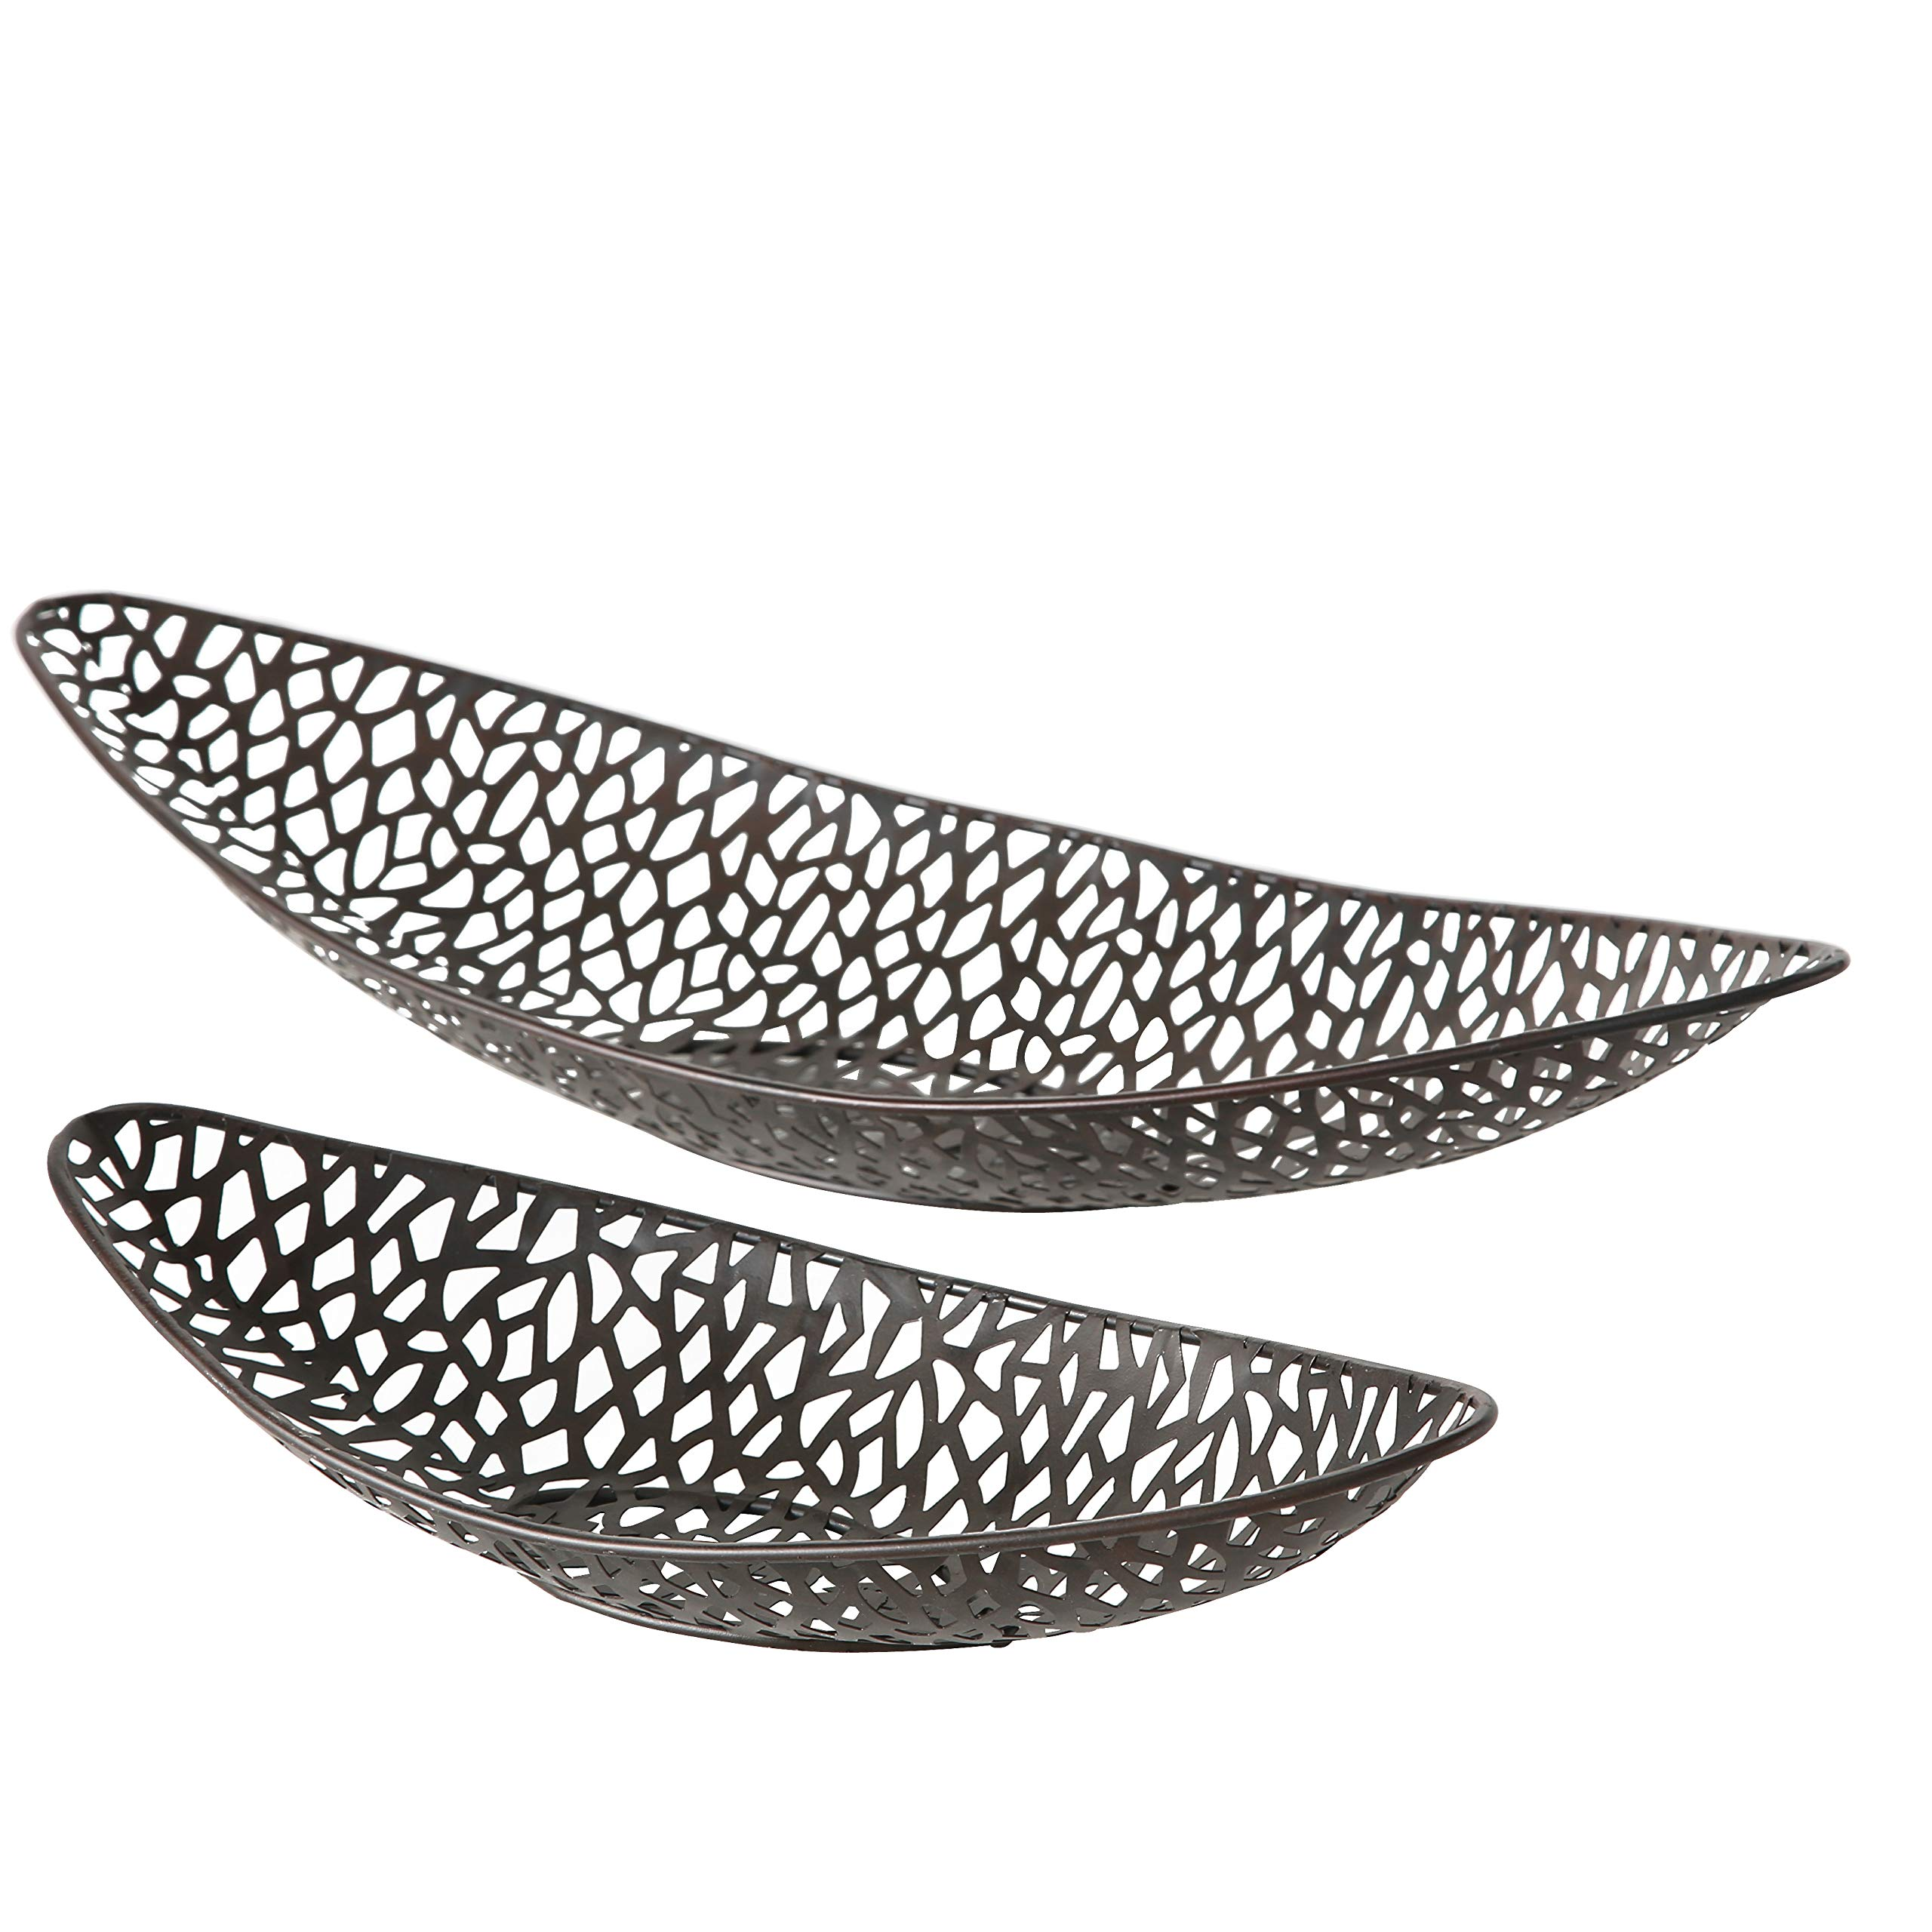 WHW Whole House Worlds Key West Banana Boat Decorative Bowls, Set of 2, Artisinal Design, Made by Hand, Open Metal Work, Rustic Bronze, Iron, 20 1/2 and 14 1/4 Inches Long by WHW Whole House Worlds